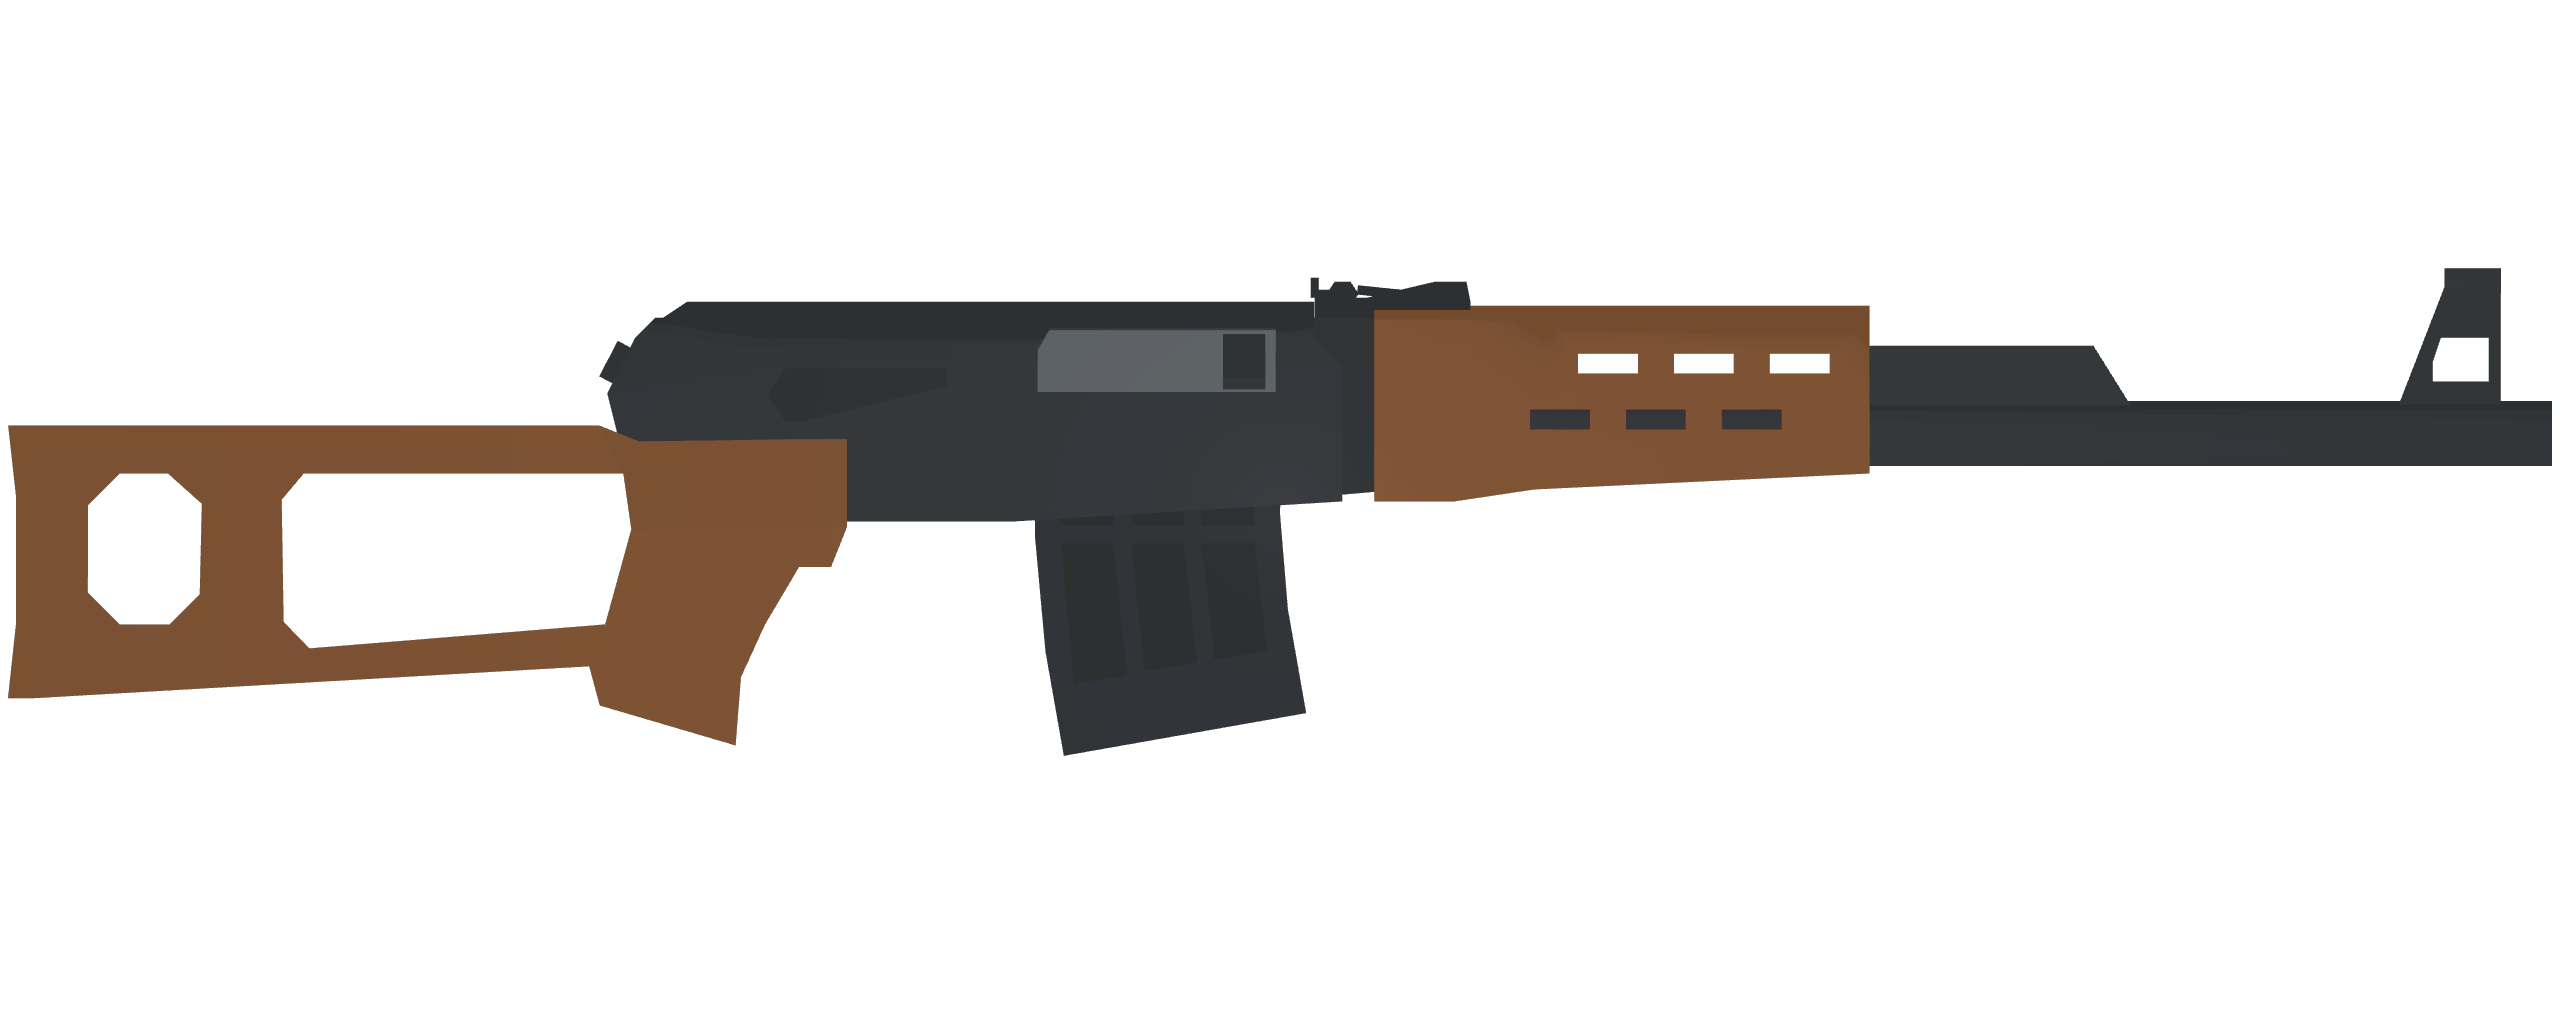 Unturned Uncreated Warfare Mods & All ID List + Attachments - Russian Weapons - 3D4BDE5